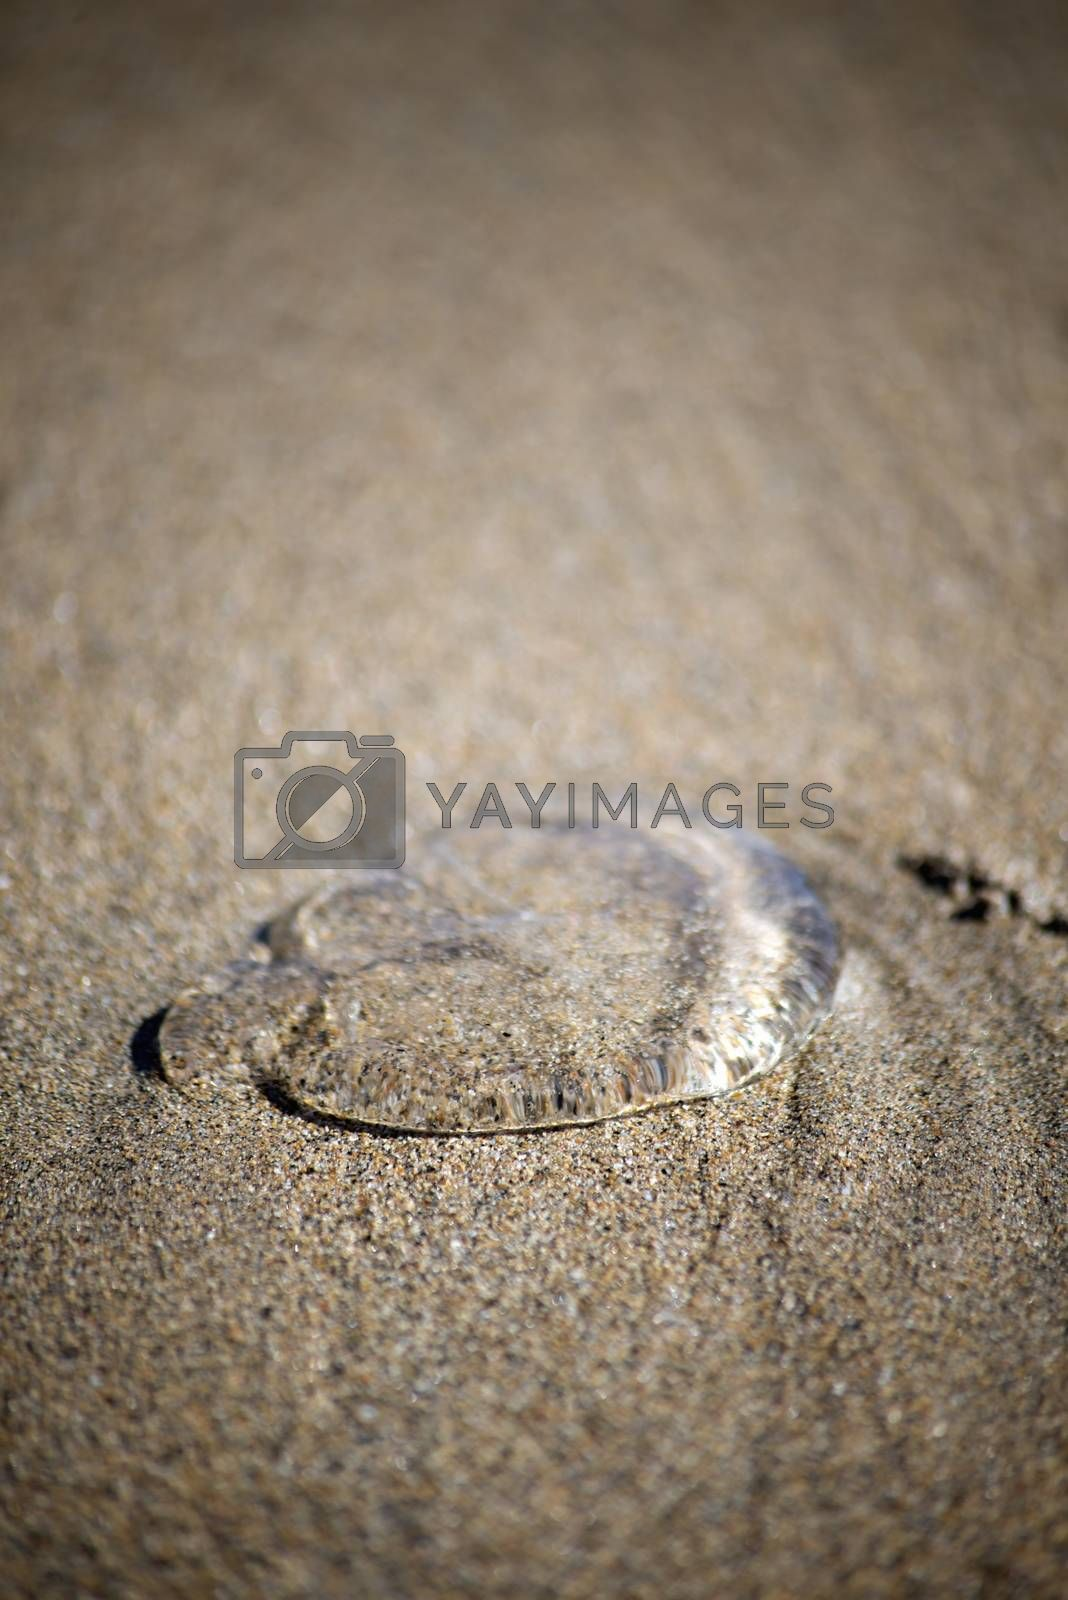 see through jellyfish in the sands of ireland